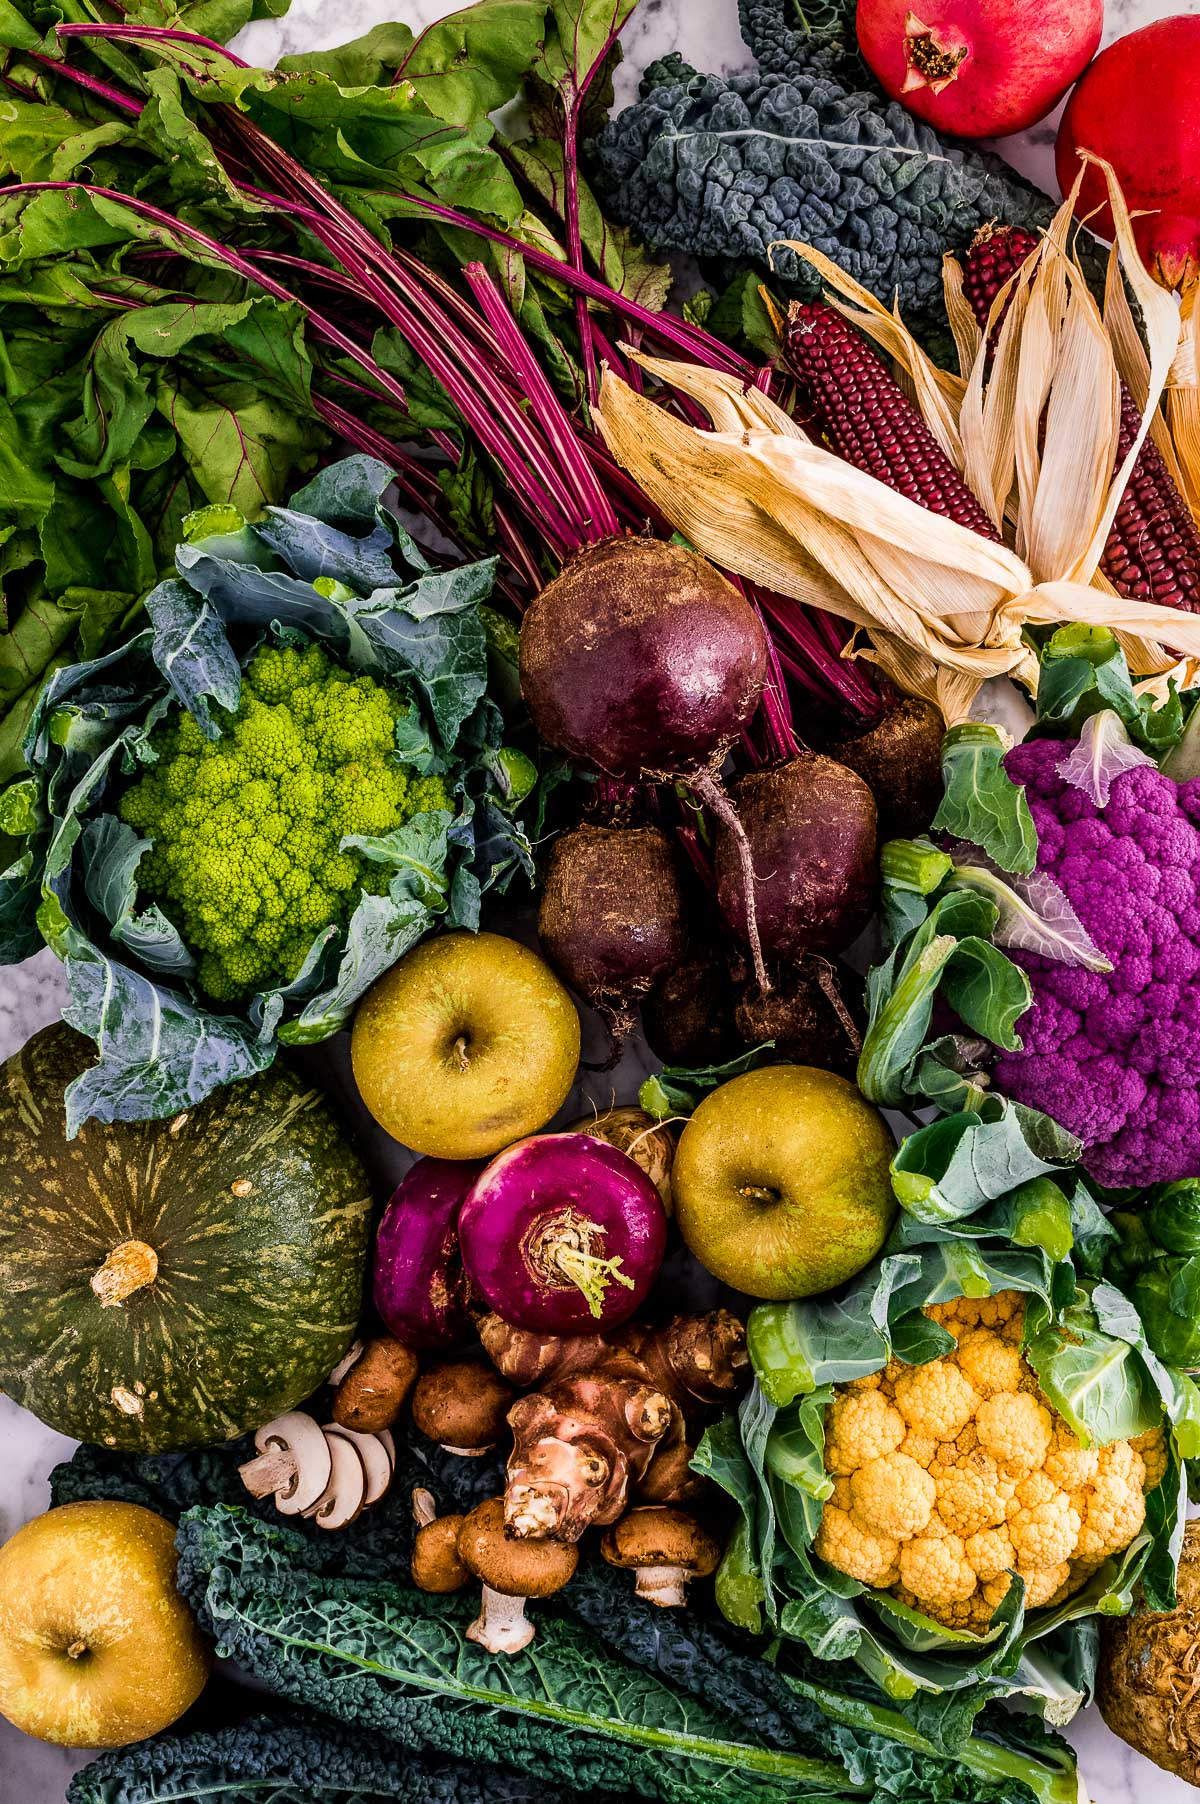 FALL HARVEST VEGETABLES beetroot apples pumpkin photography verdure autunnali al vapore zucca barbabietola mele